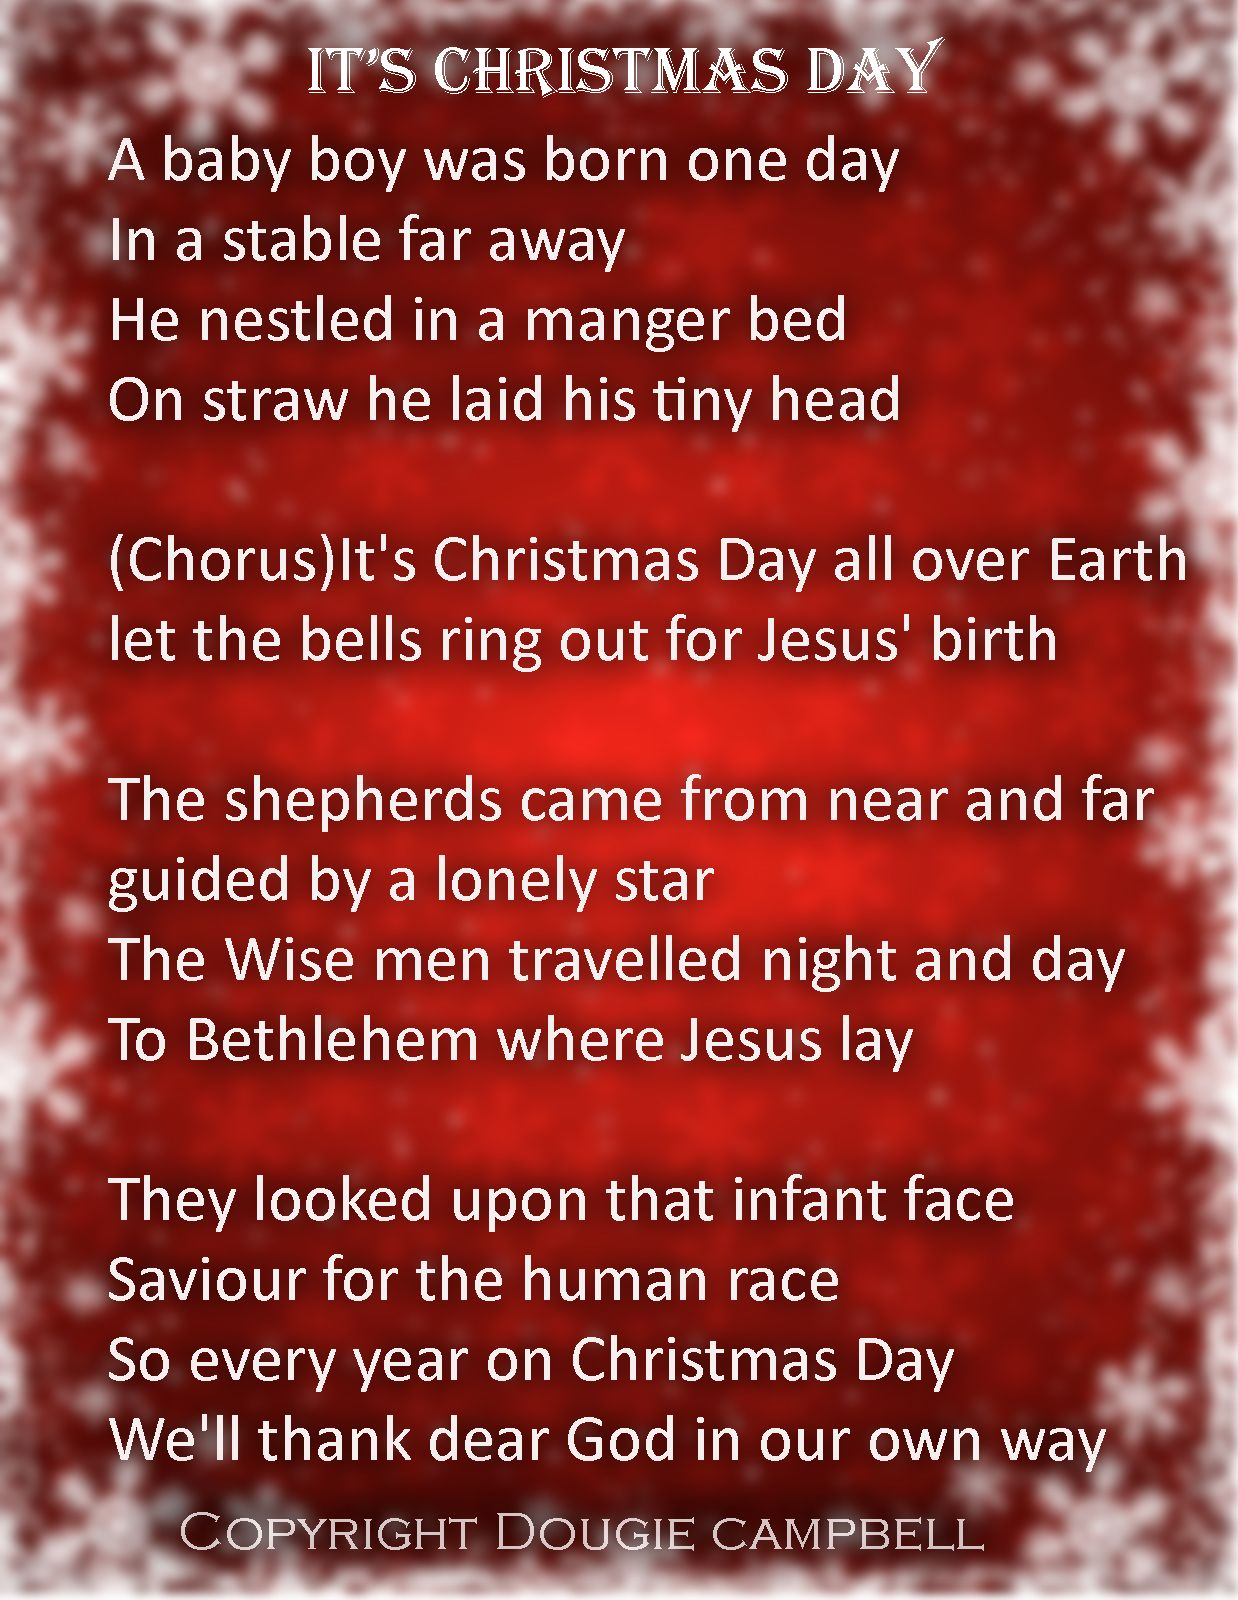 IT'S CHRISTMAS DAYThe Christmas Song that has been